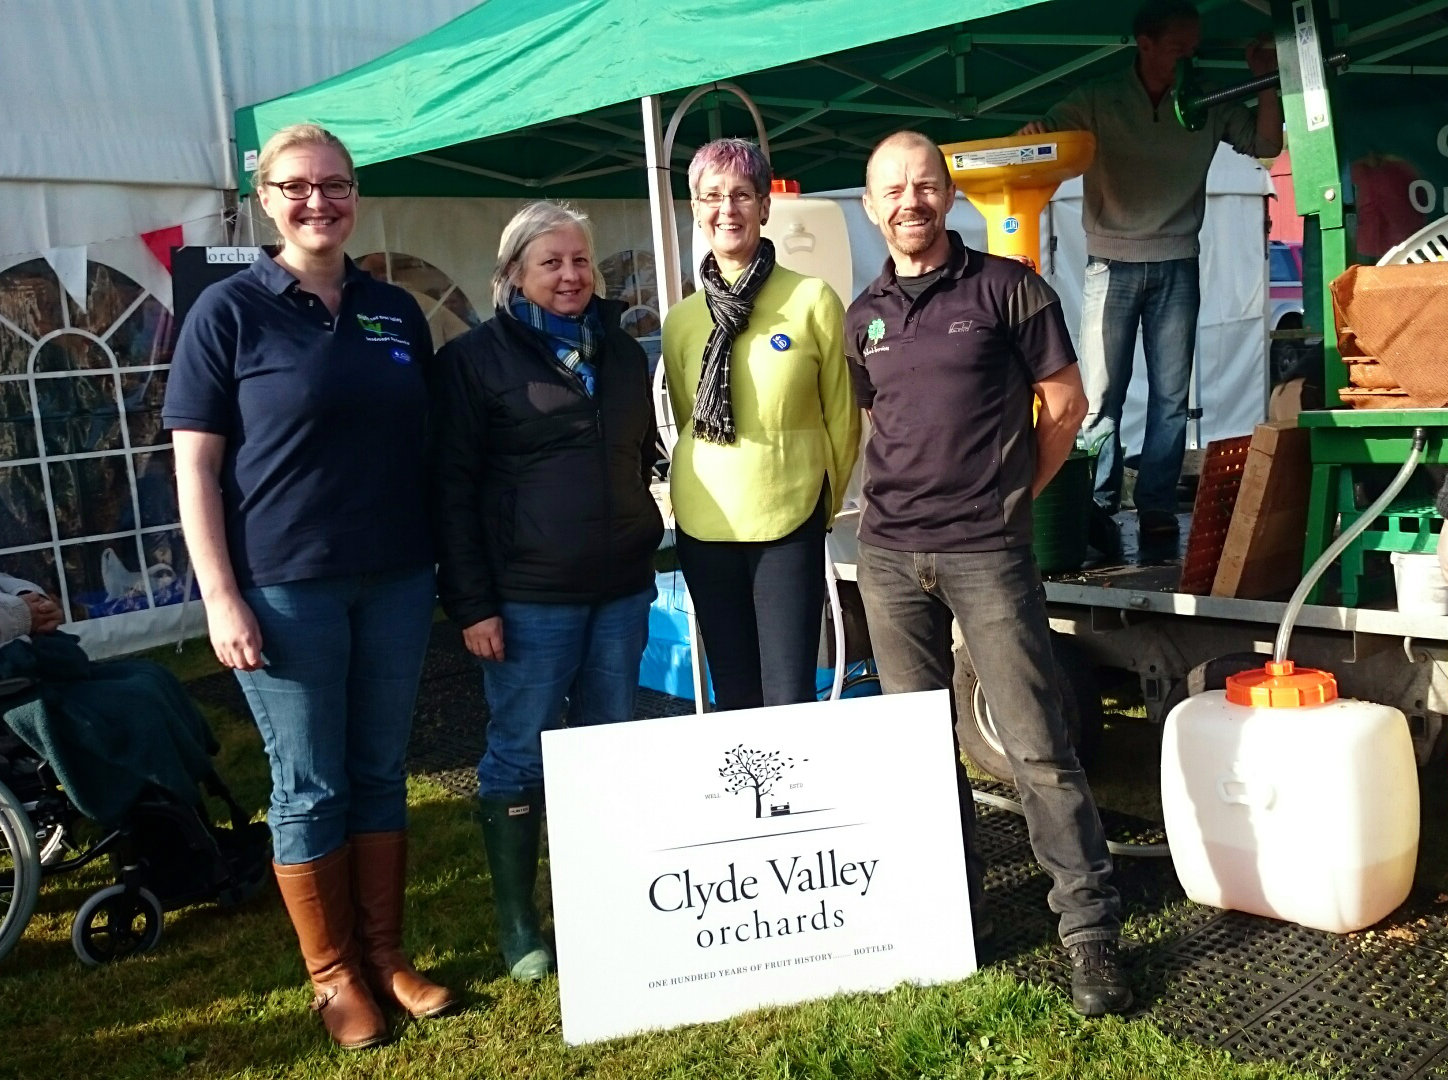 Donna Marshall (CAVLP Manager), Cheryl Osbourne (Clyde Valley Orchard Co-operative Ltd. Chair), Alison Cutforth (Heritage Lottery Fund Scotland) and Duncan Arthur (Clyde Valley Orchard Co-operative Ltd.) stand in front of the apple pressing demonstration at Fruit Day, Overton Farm